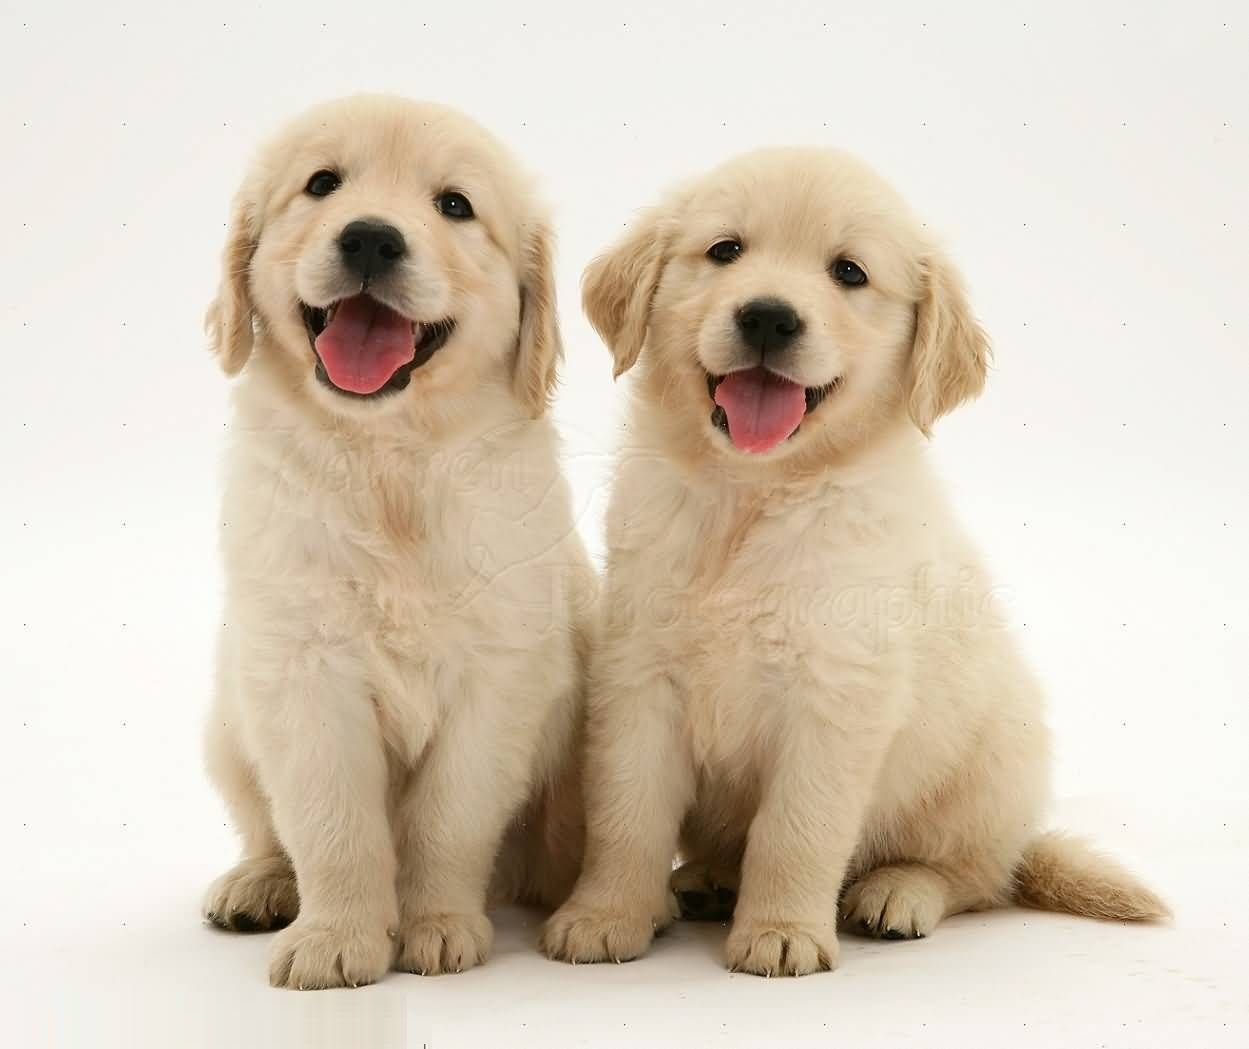 Pin By Kelsey Wray On Puppies White Golden Retriever Puppy Dogs